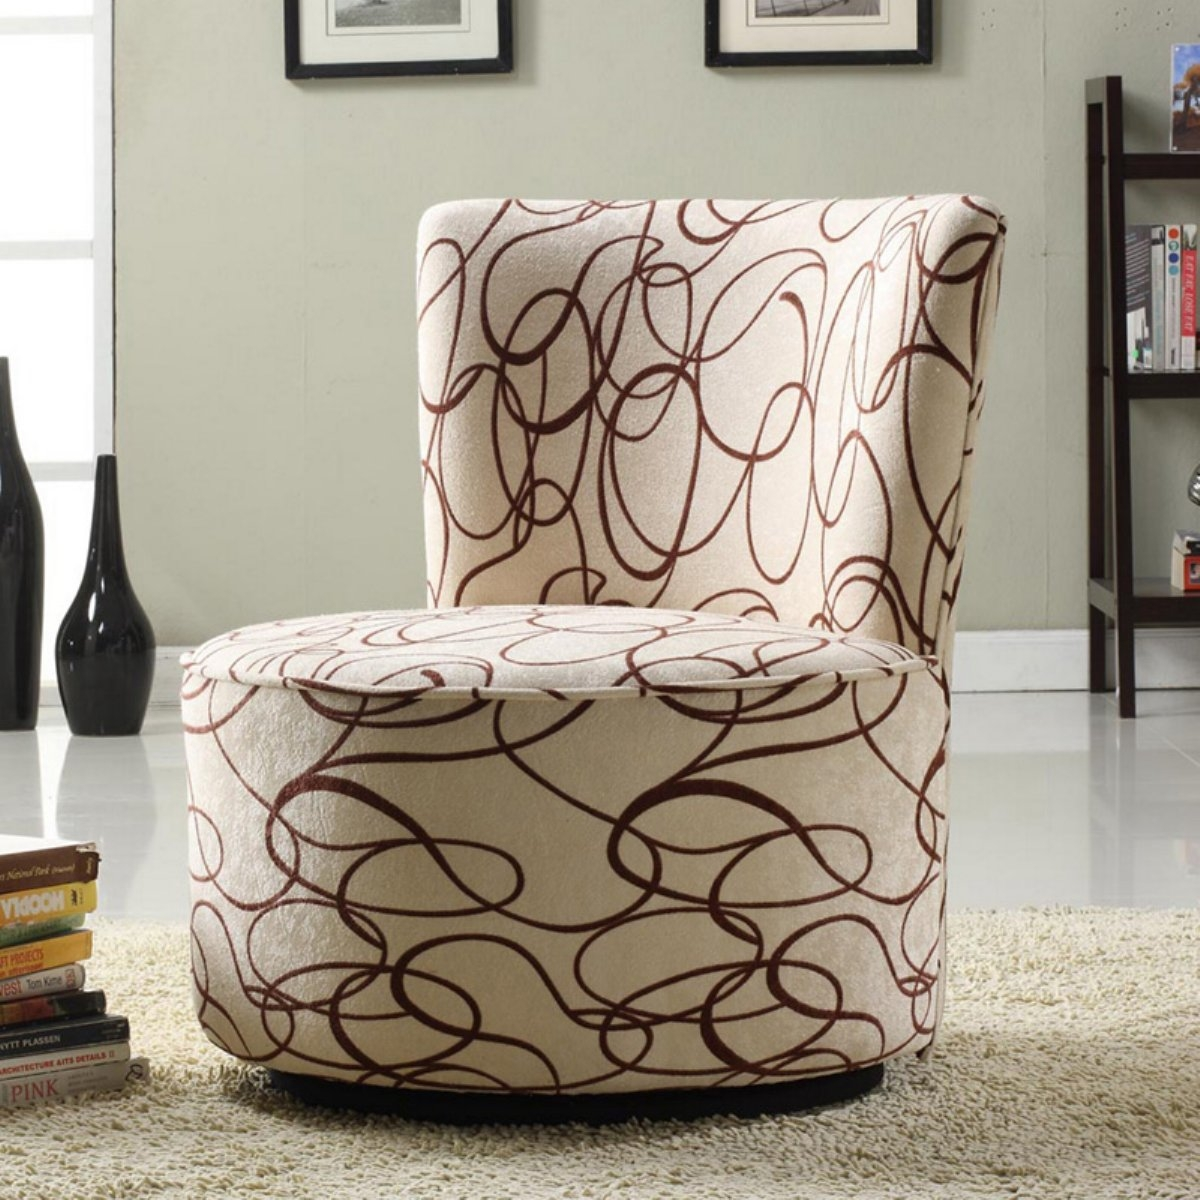 Round Sofa Chair Living Room Furniture Raya Furniture Within Round Sofa Chair Living Room Furniture (Photo 5 of 15)